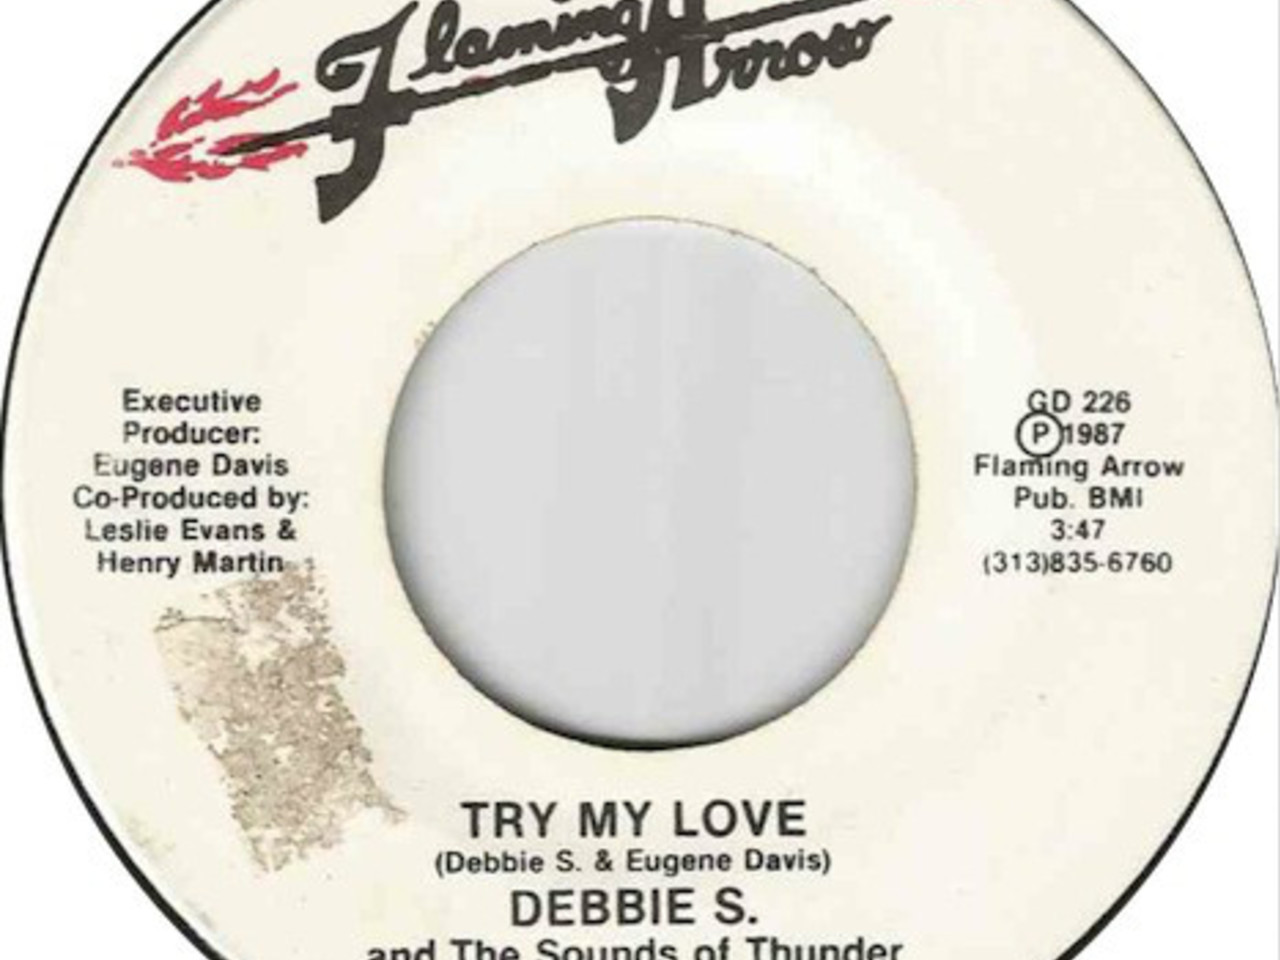 Photo of debbie-s-the-sounds-of-thunder